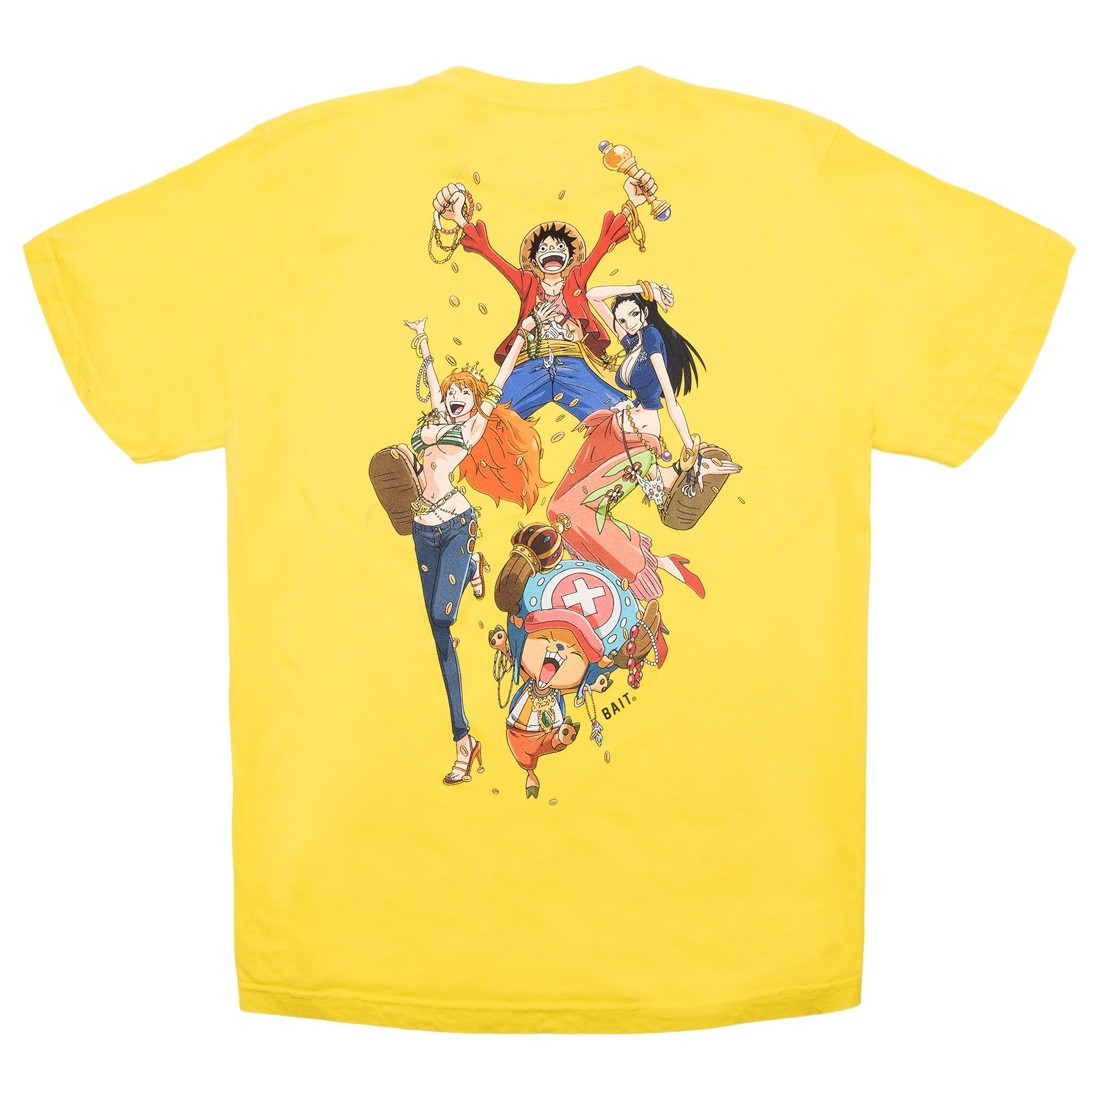 BAIT x One Piece x Upcycle LA Men Gold We Rich Tee (yellow)